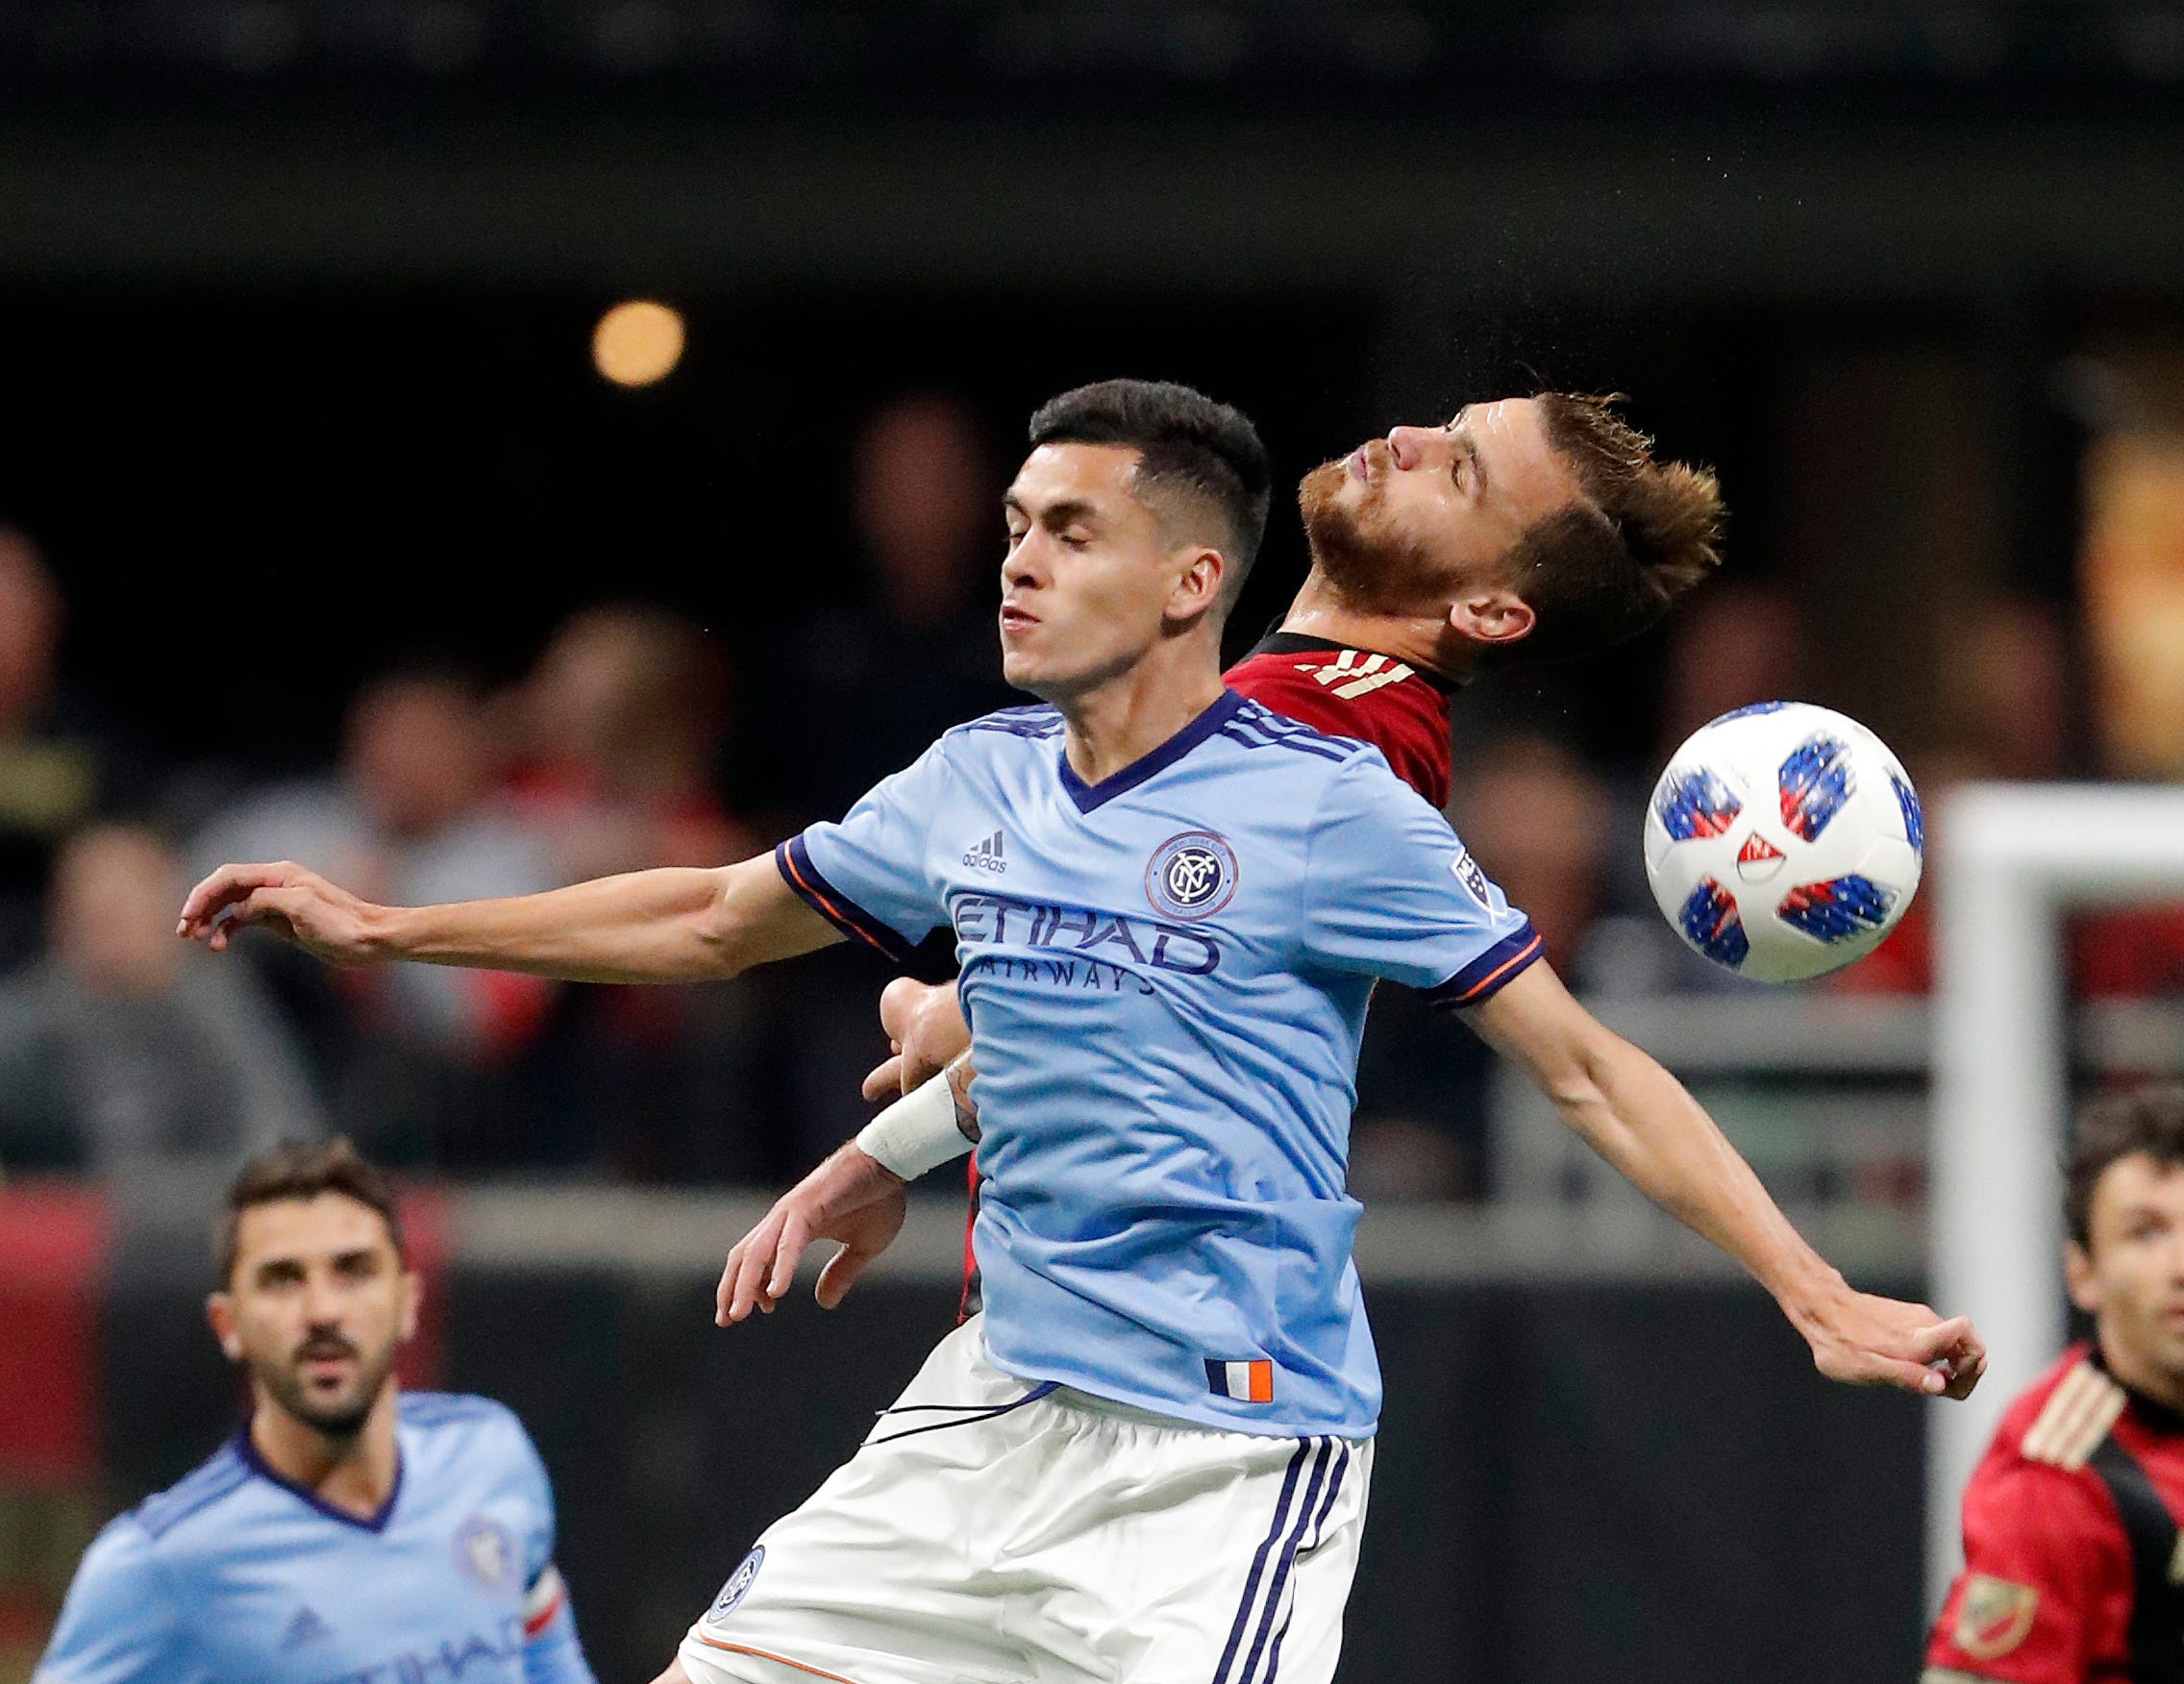 Martinez scores twice, Atlanta United beats NYCFC 3-1